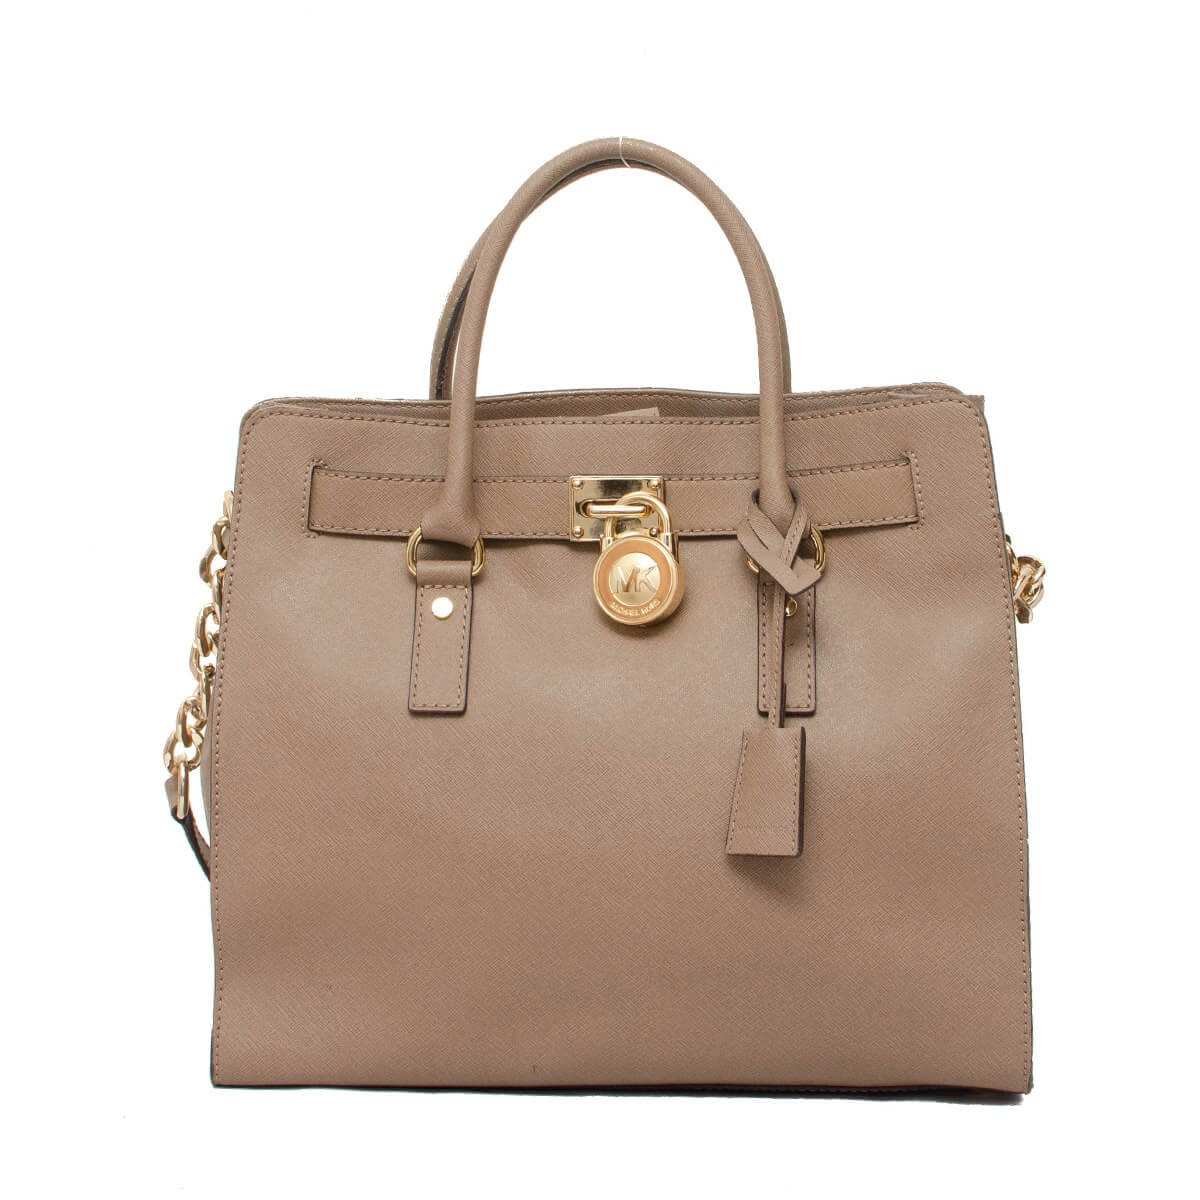 f45e25cf48d5 Hamilton Saffiano Large Lock and Key New with Tags Dark Dune Taupe Brown    Gold tone Hardware Leather Satchel